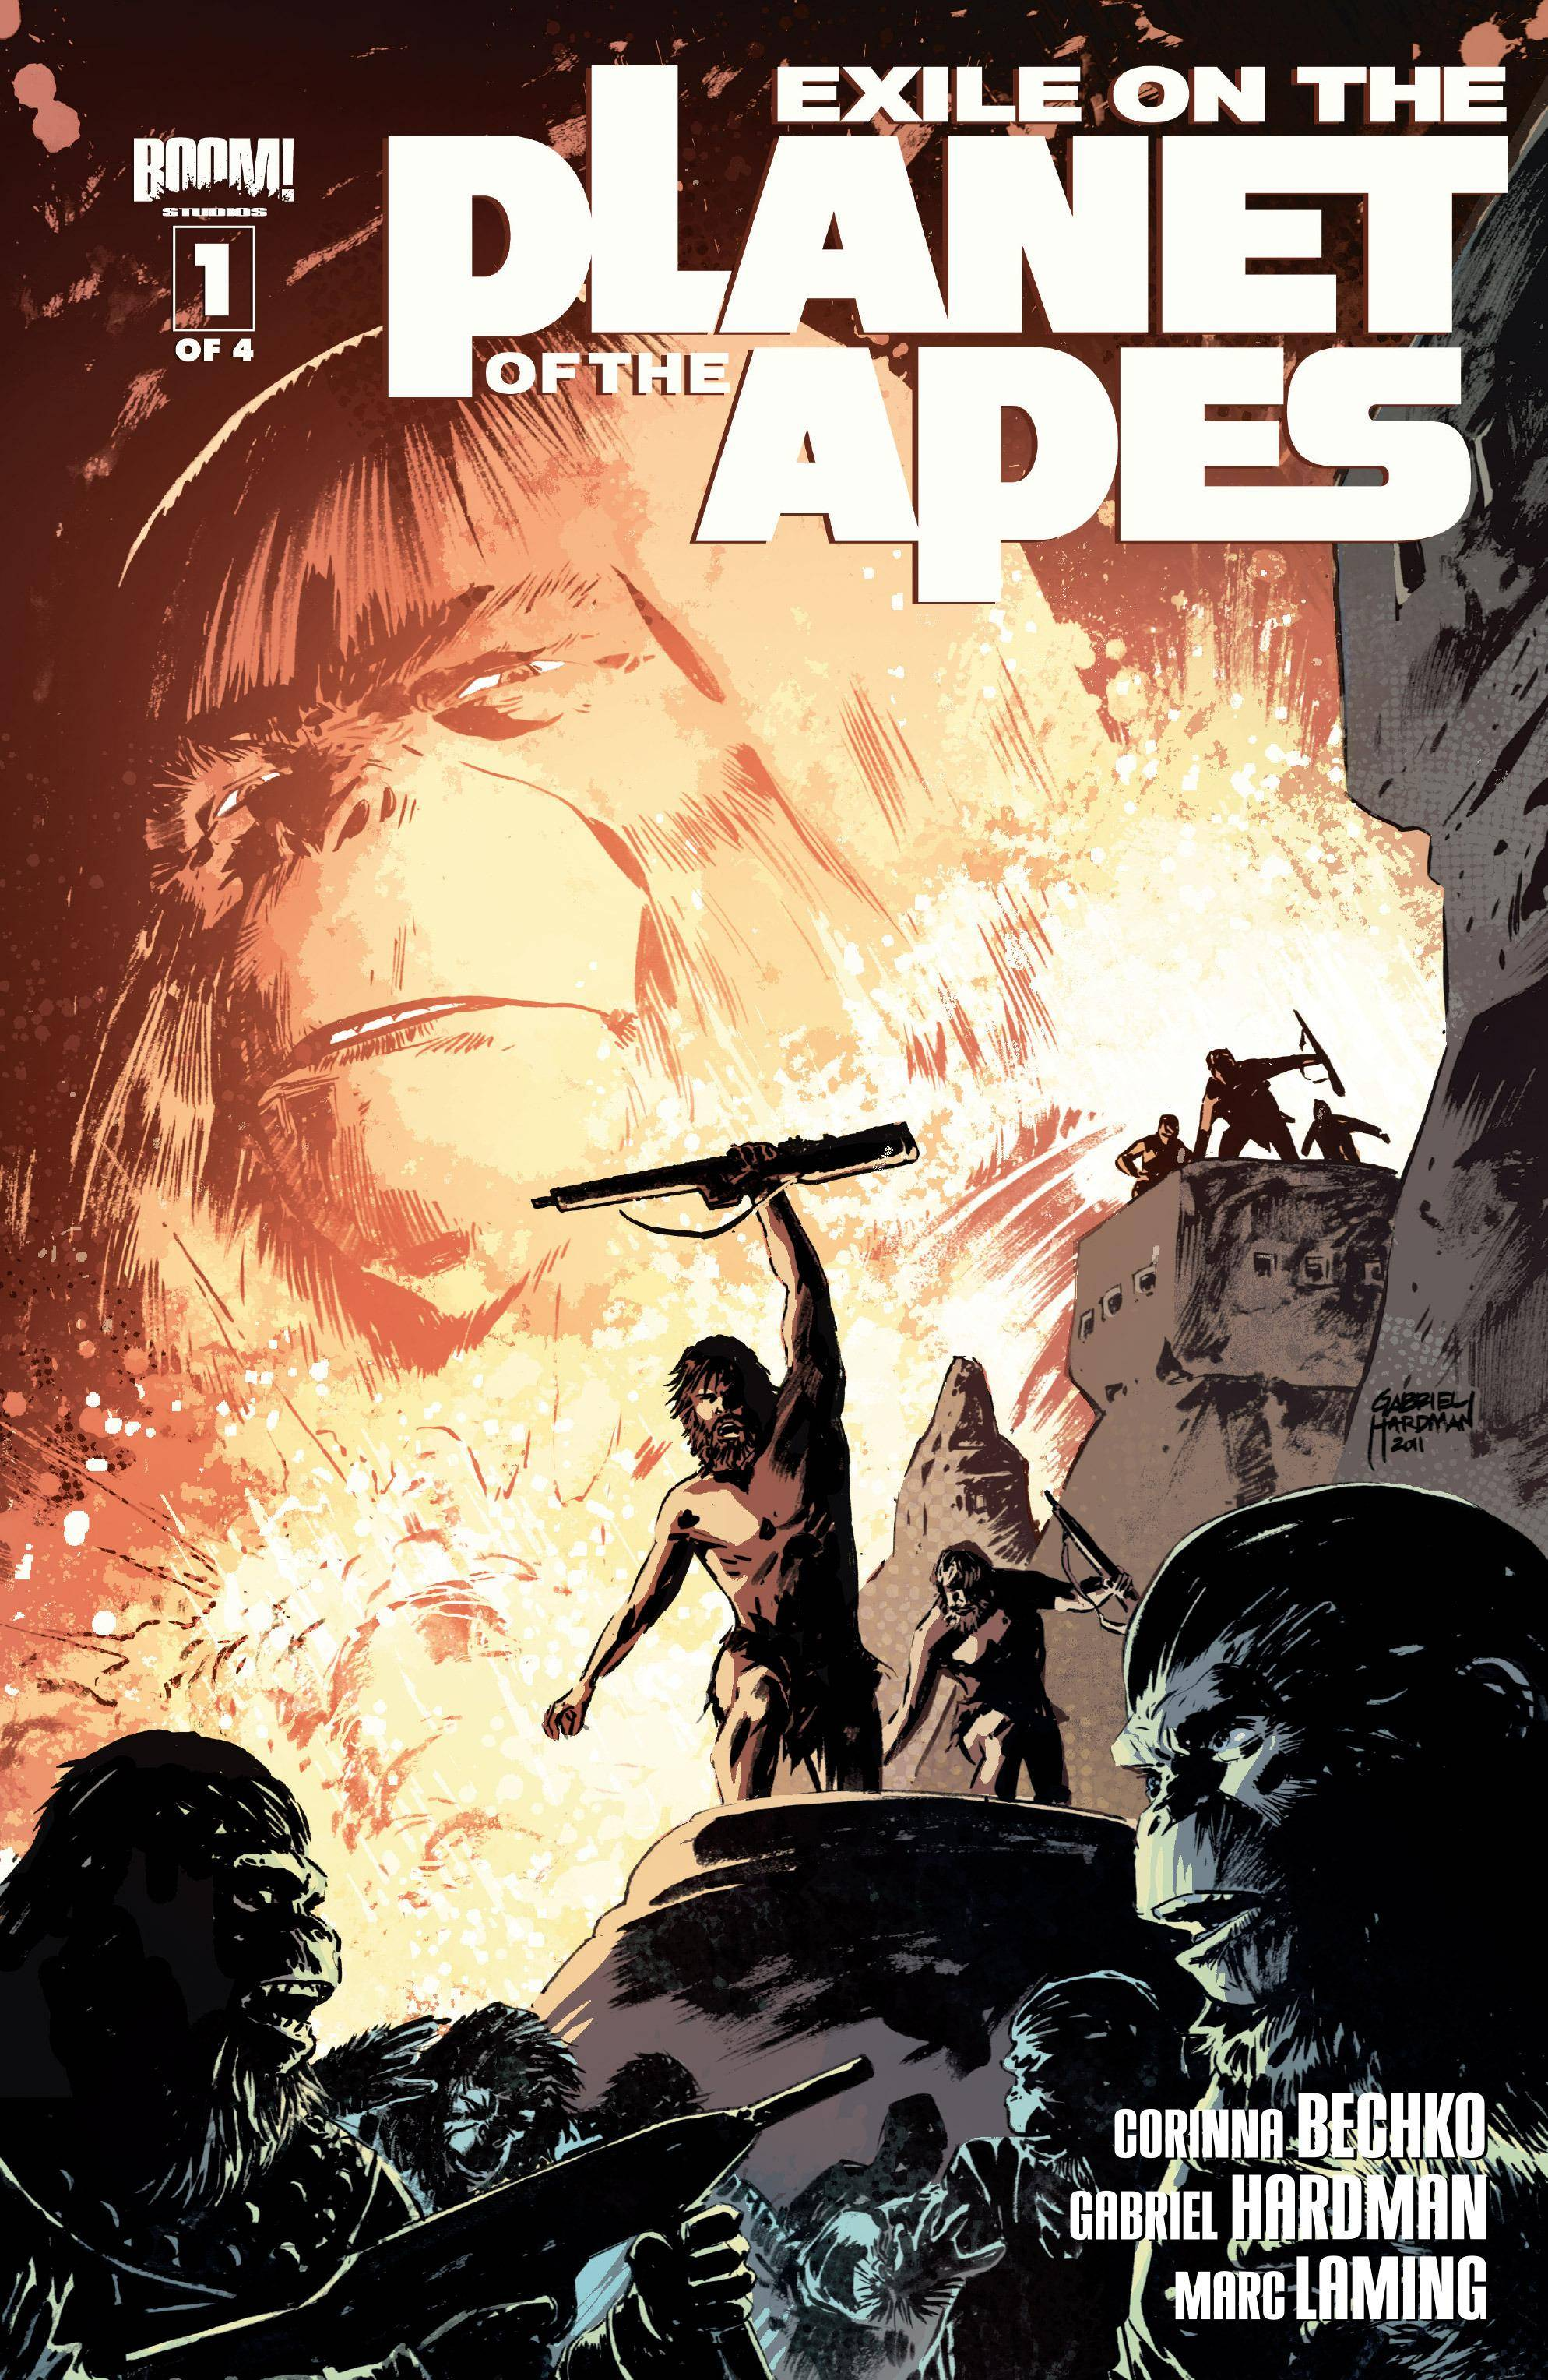 Exile on the Planet of the Apes 01 of 04 2012 3 covers digital